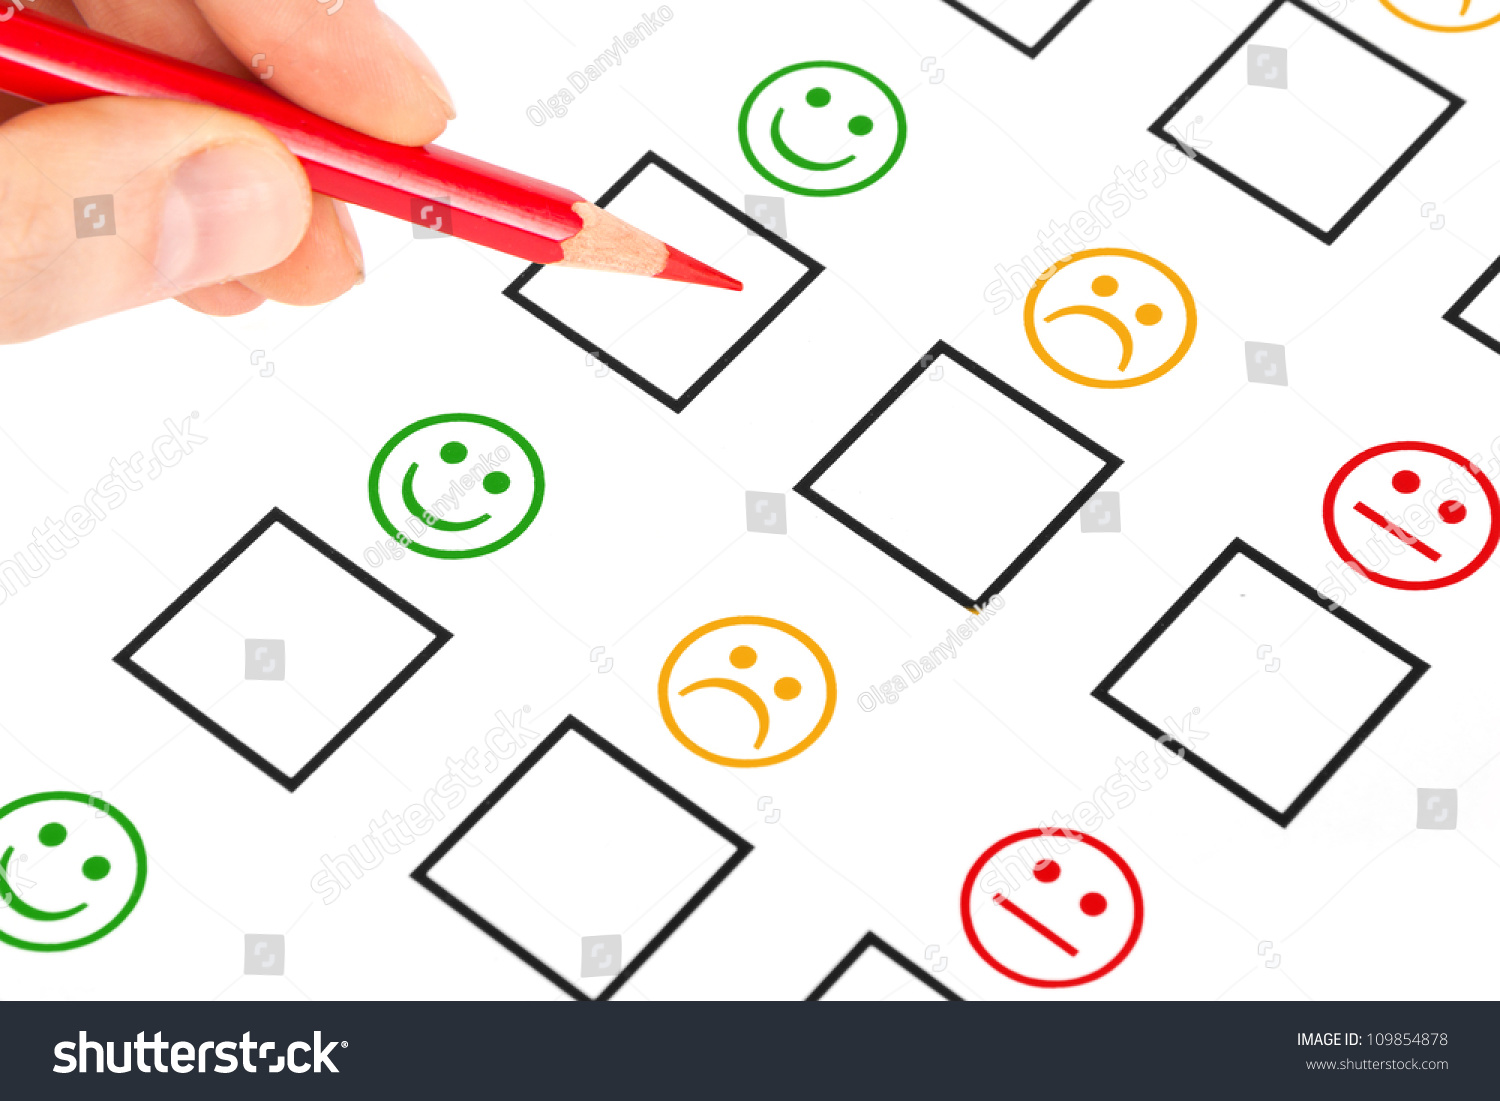 customer satisfaction in marketing Advanced social humanities and mangement 3(3) 2016:72-79 wwwashm-journalcom 72 abstract customer satisfaction is a marketing term that measures how products or services.